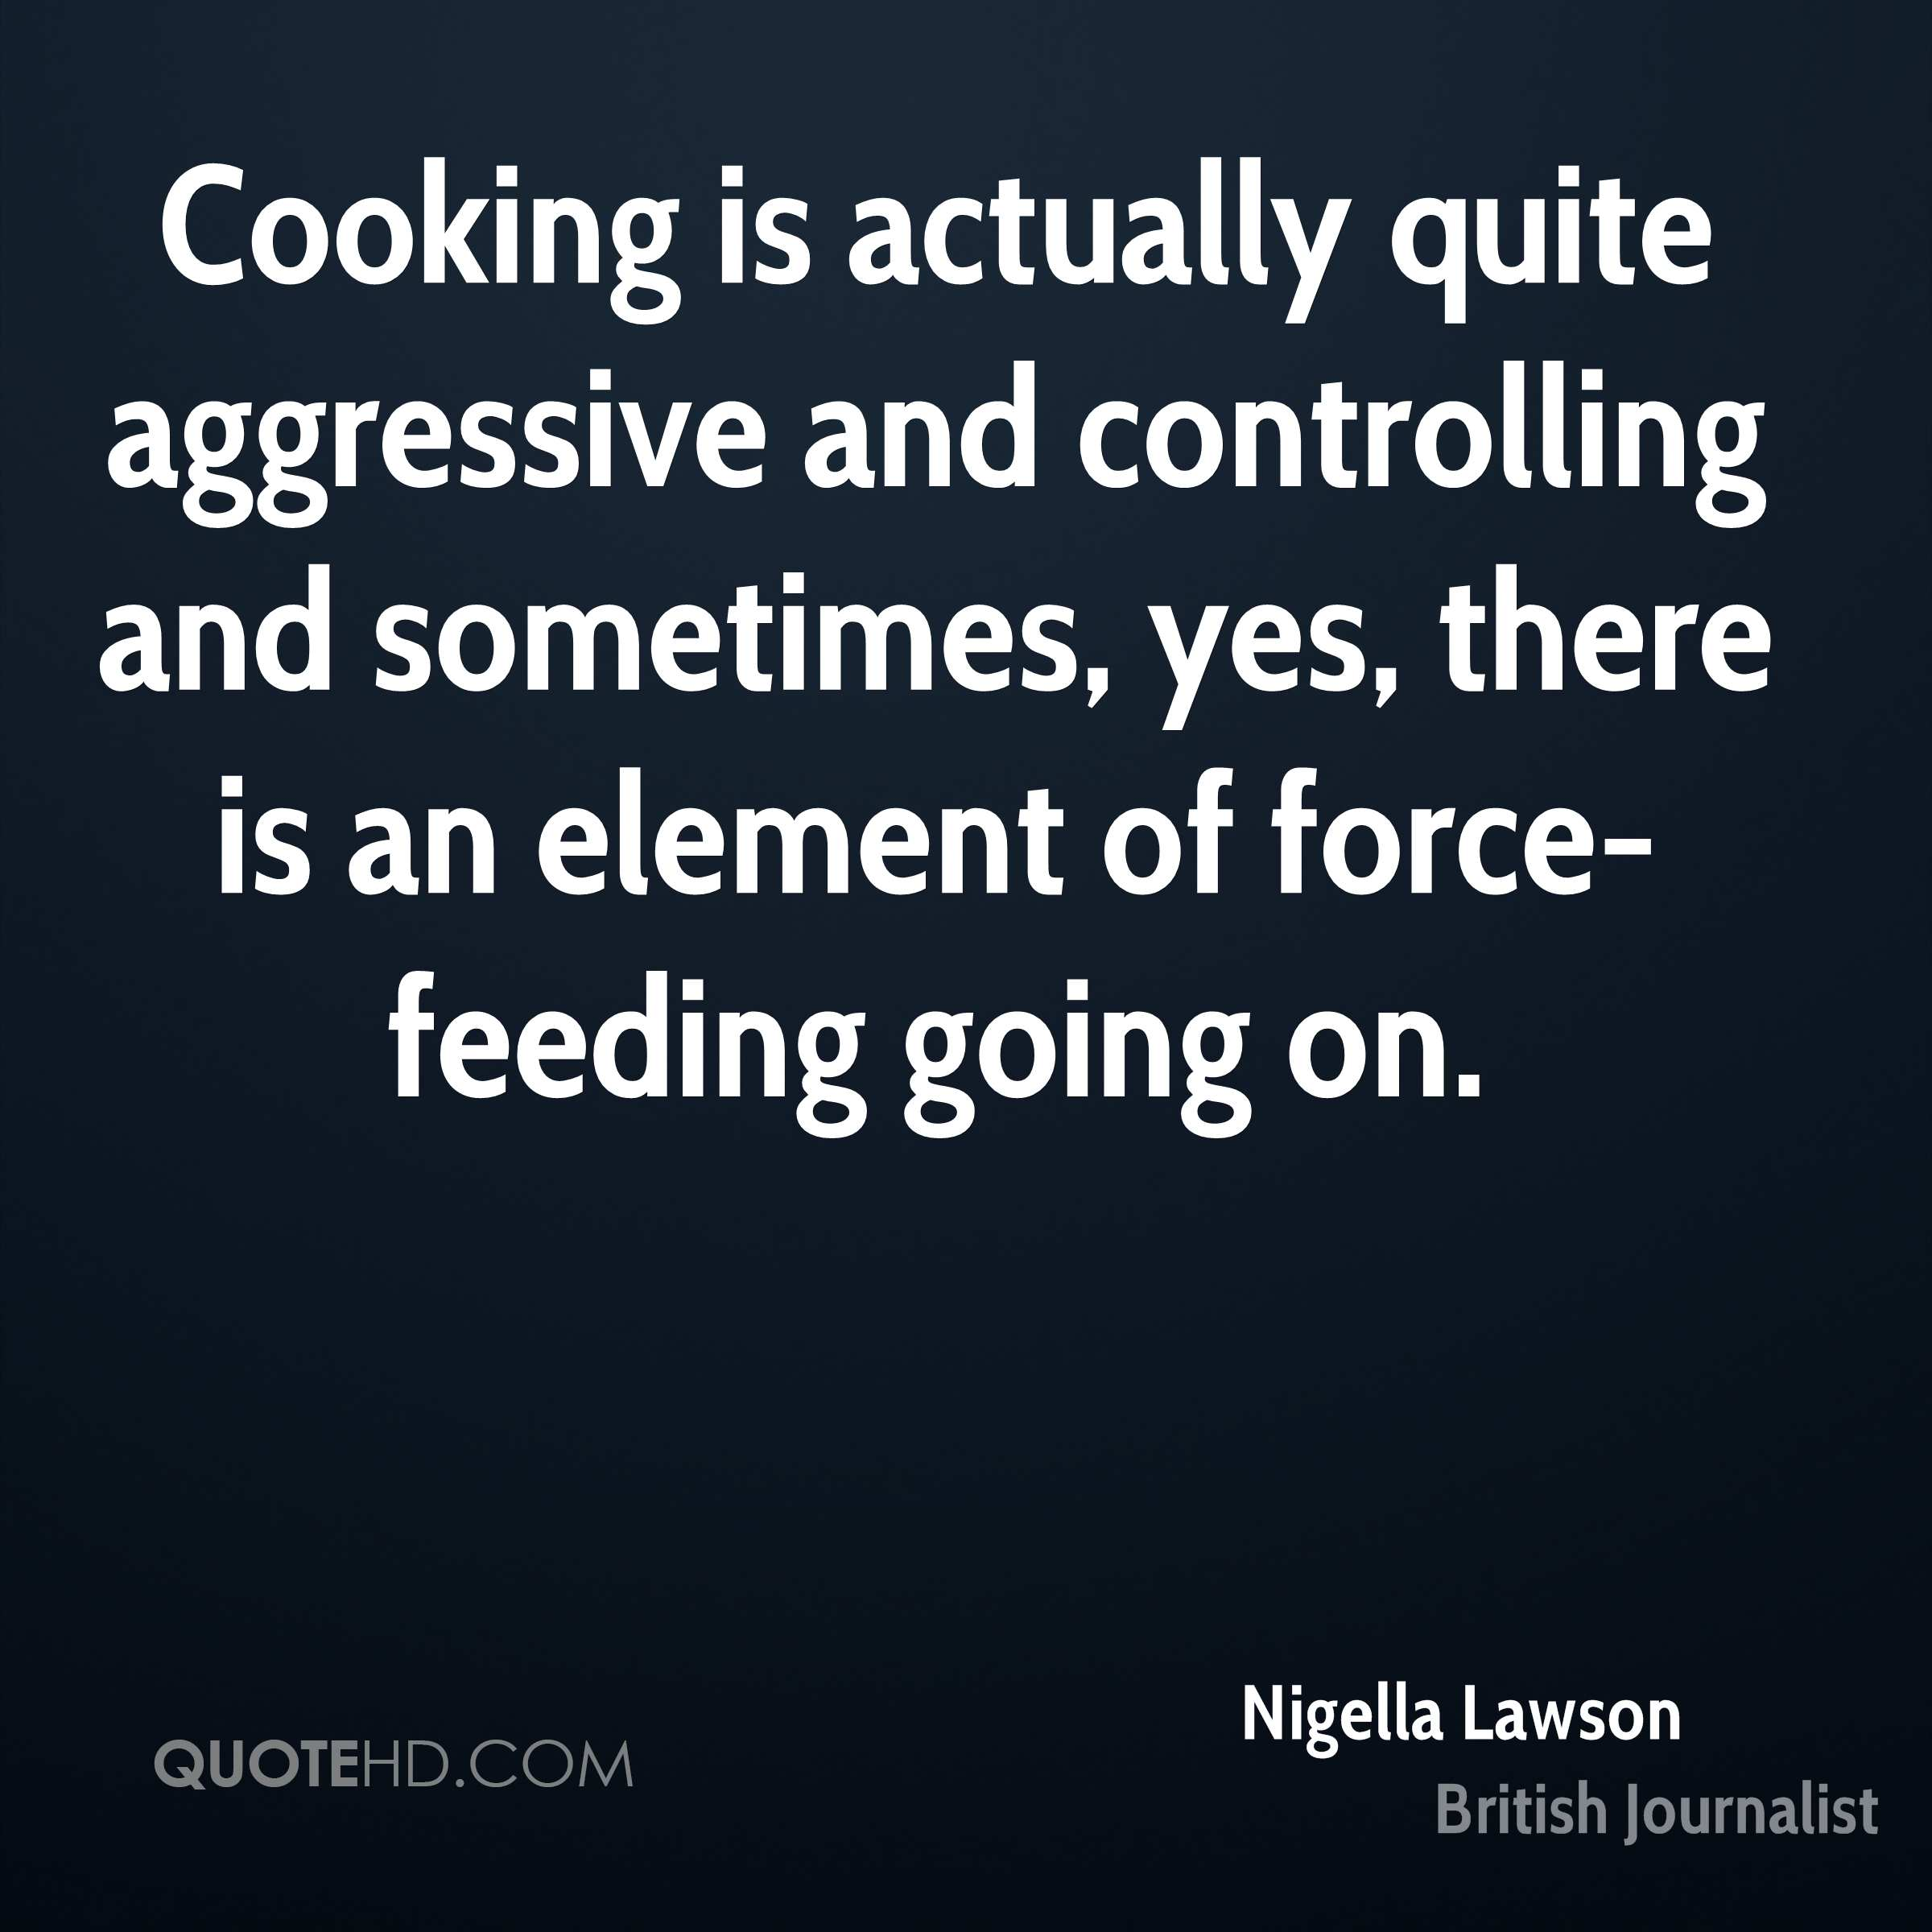 Cooking is actually quite aggressive and controlling and sometimes, yes, there is an element of force-feeding going on.